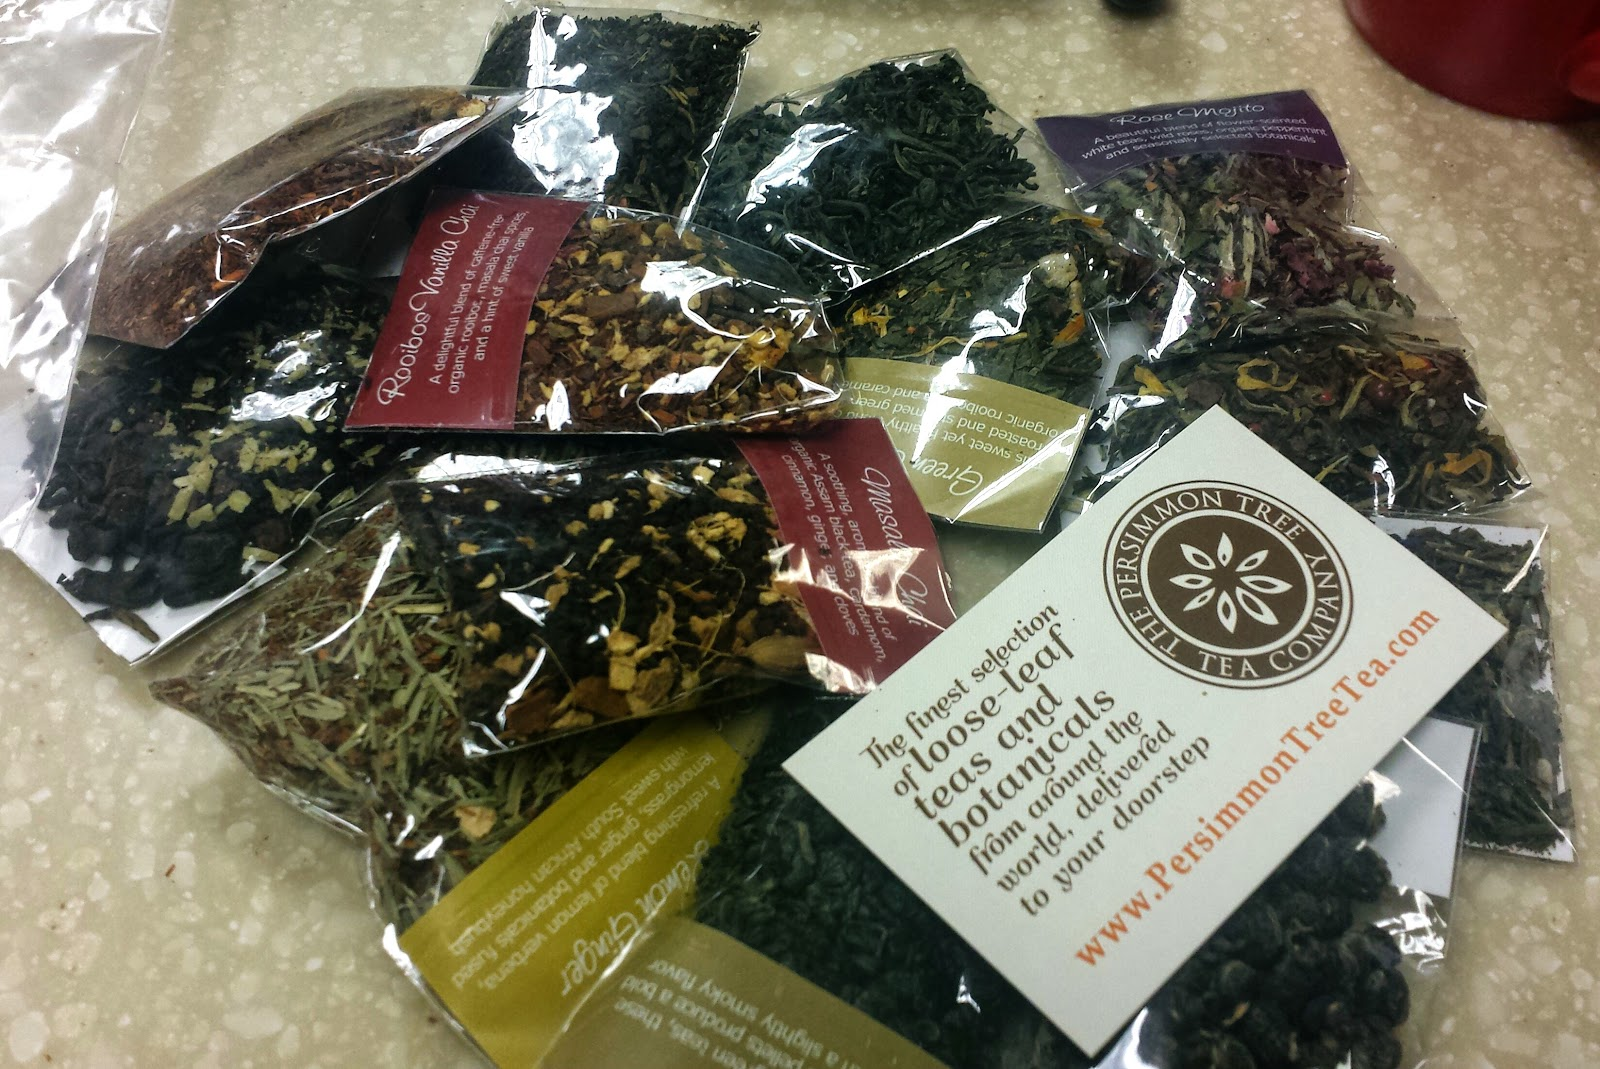 The Persimmon Tree Tea Company Sampler Pack Review and Giveaway #Teadrinker Ends 7/18 via ProductReviewMom.com